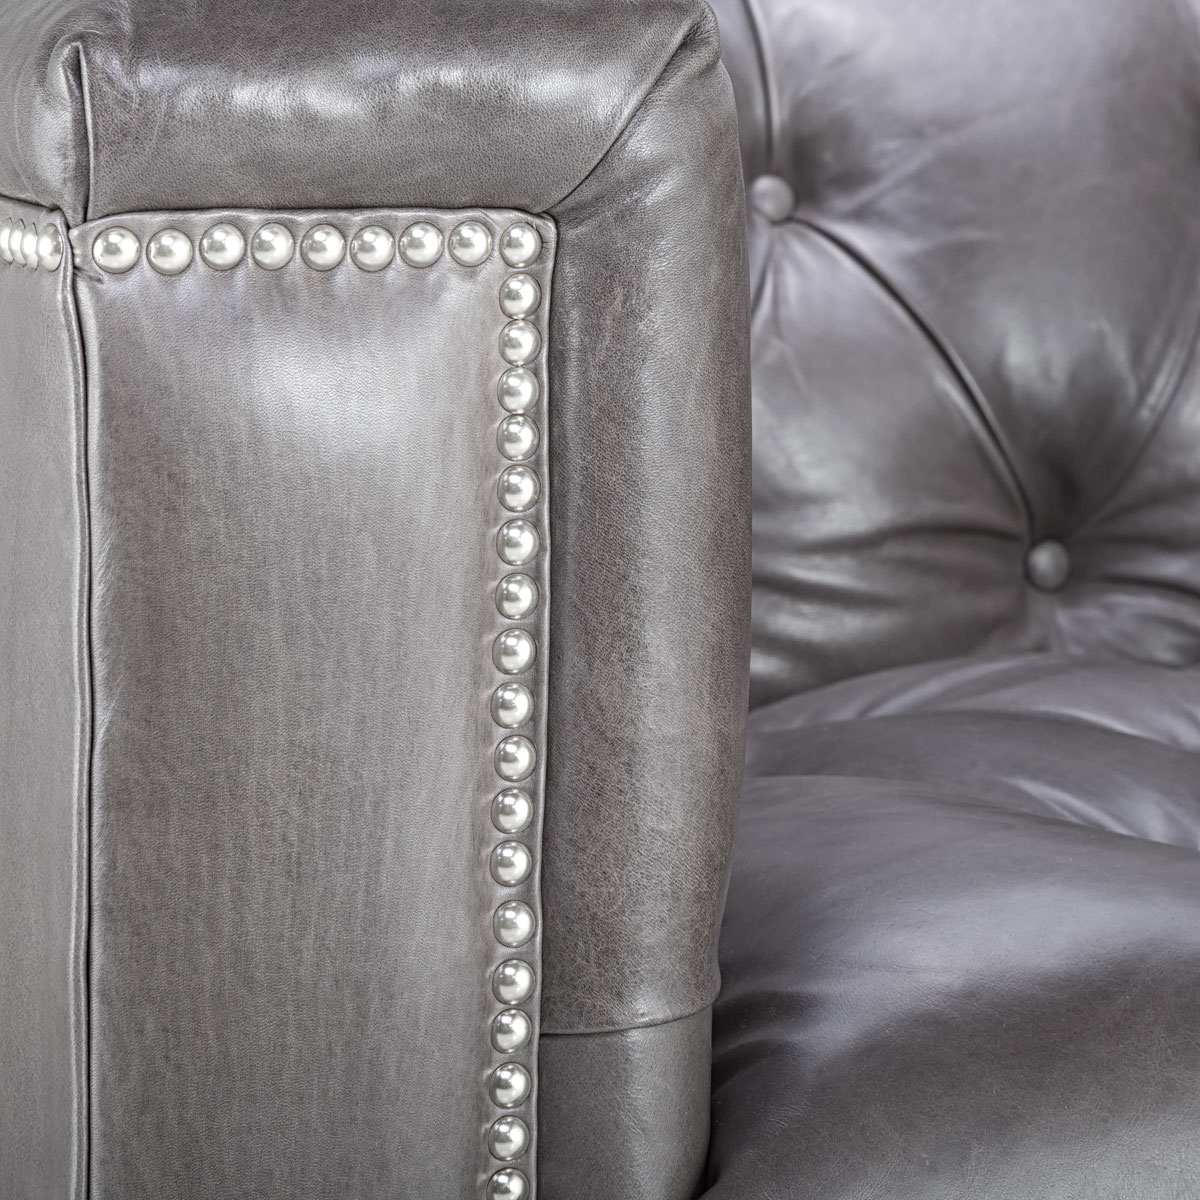 Magnificent Contemporary Leather Tufted Nailhead Sofa Safavieh Com Interior Design Ideas Gentotthenellocom